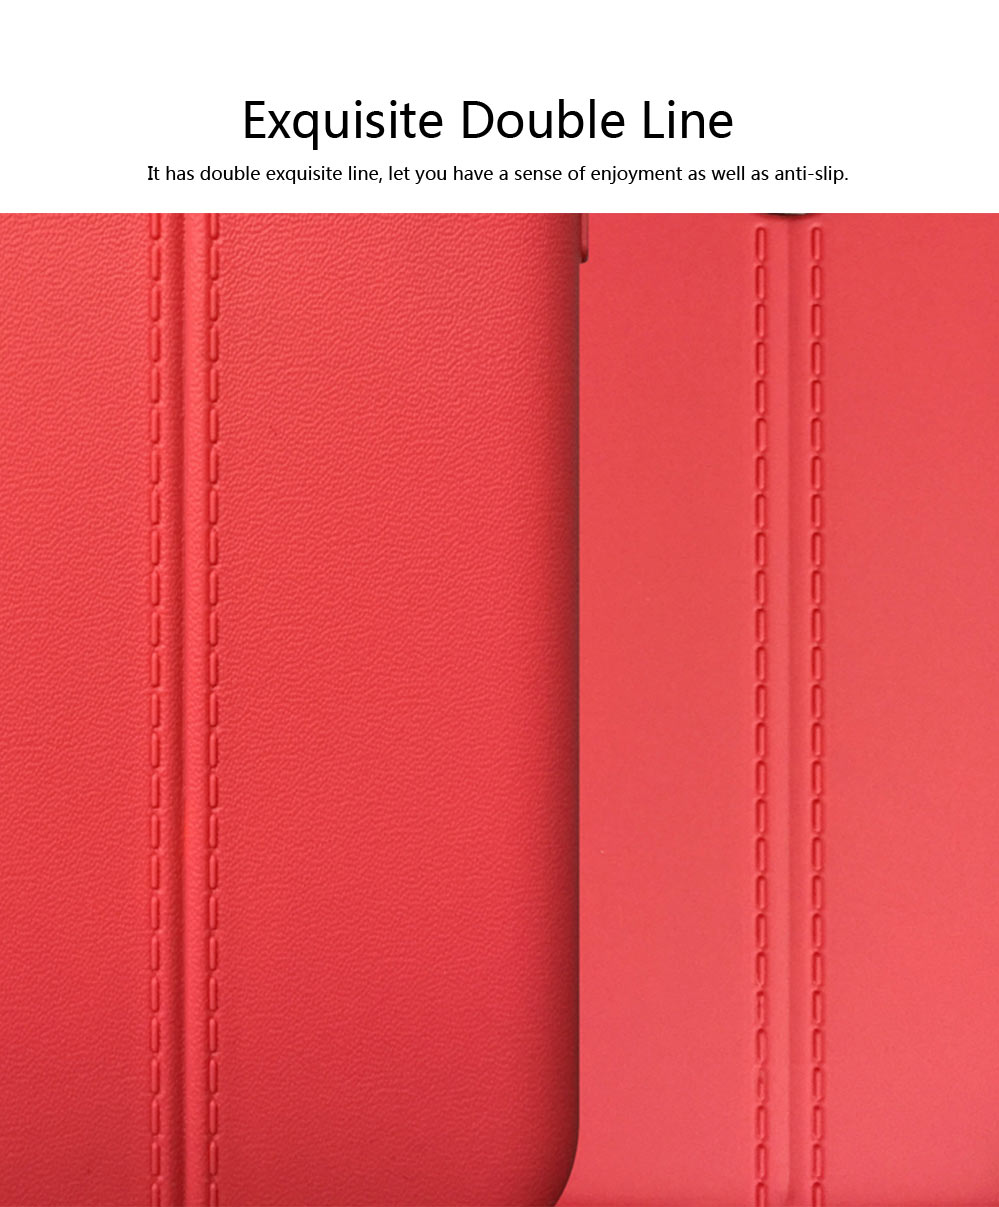 Double Line Phone Protector Case for LG G4 G6, Solid Color Anti-Fall Phone Cover, Minimalist TPU Back Cover 1